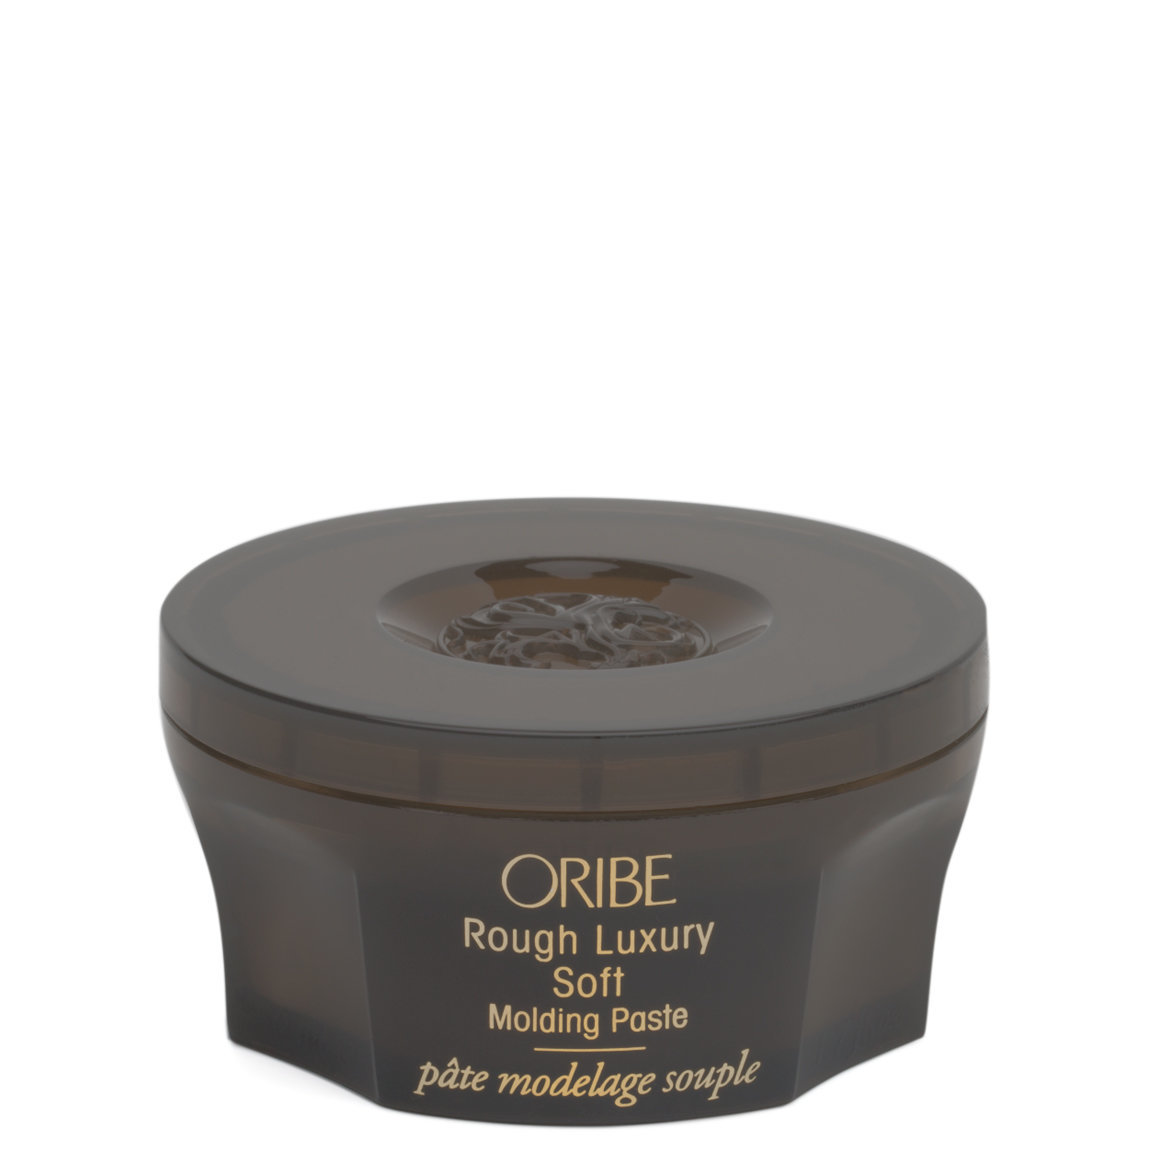 Oribe Rough Luxury Soft Molding Paste product smear.